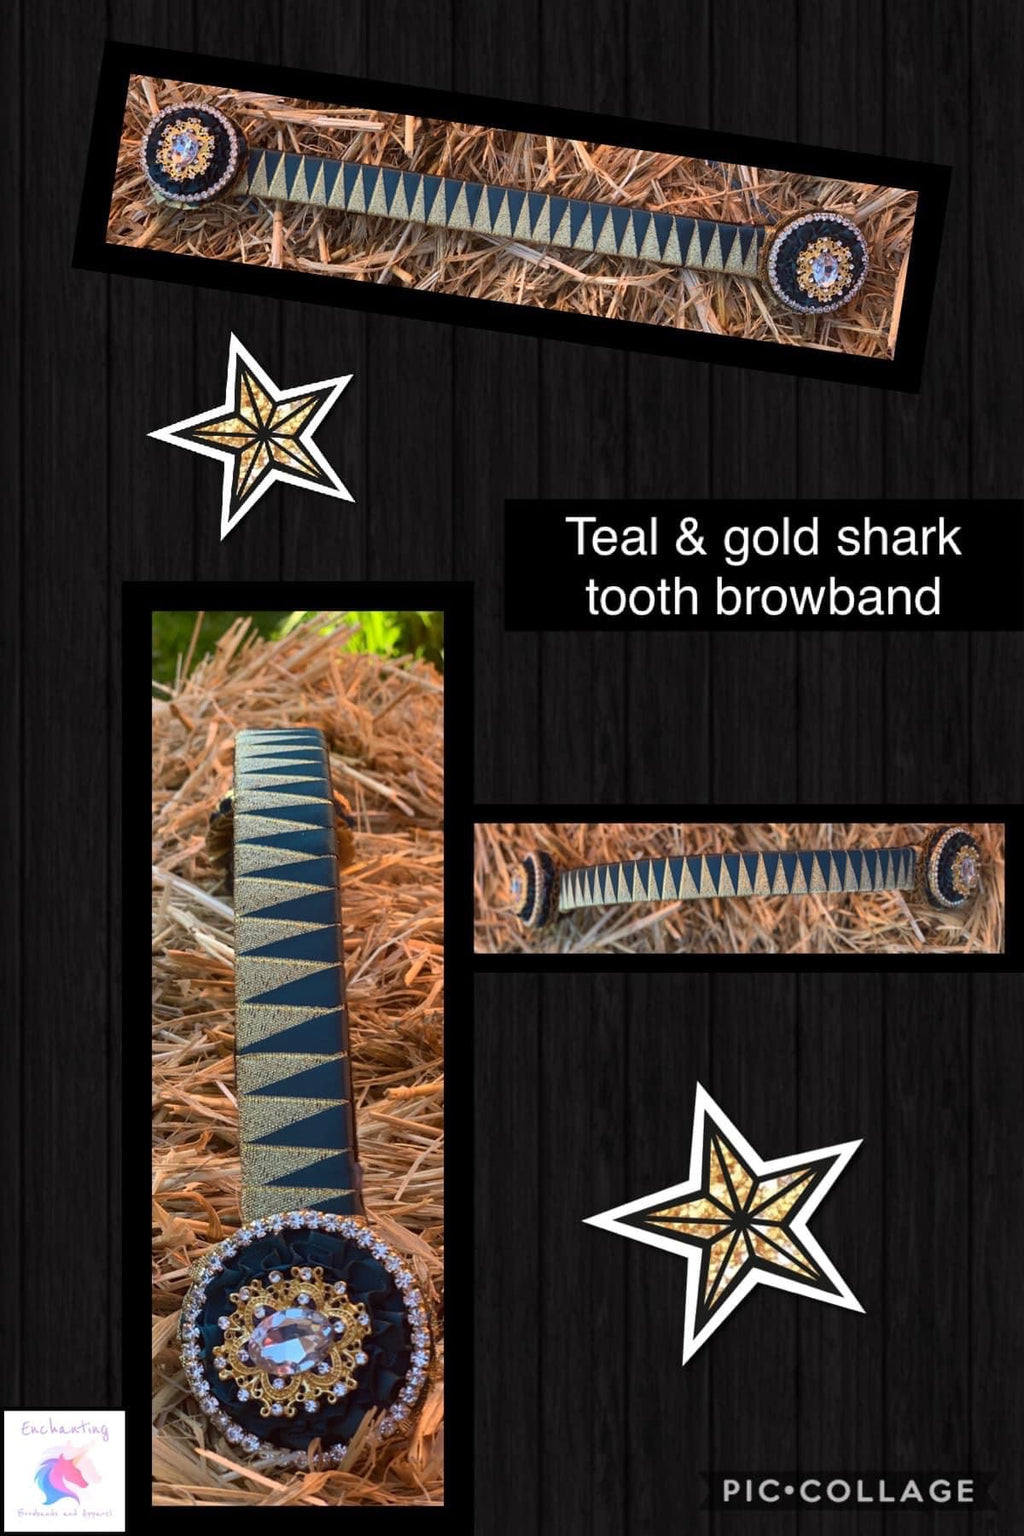 Teal & gold sharktooth browband